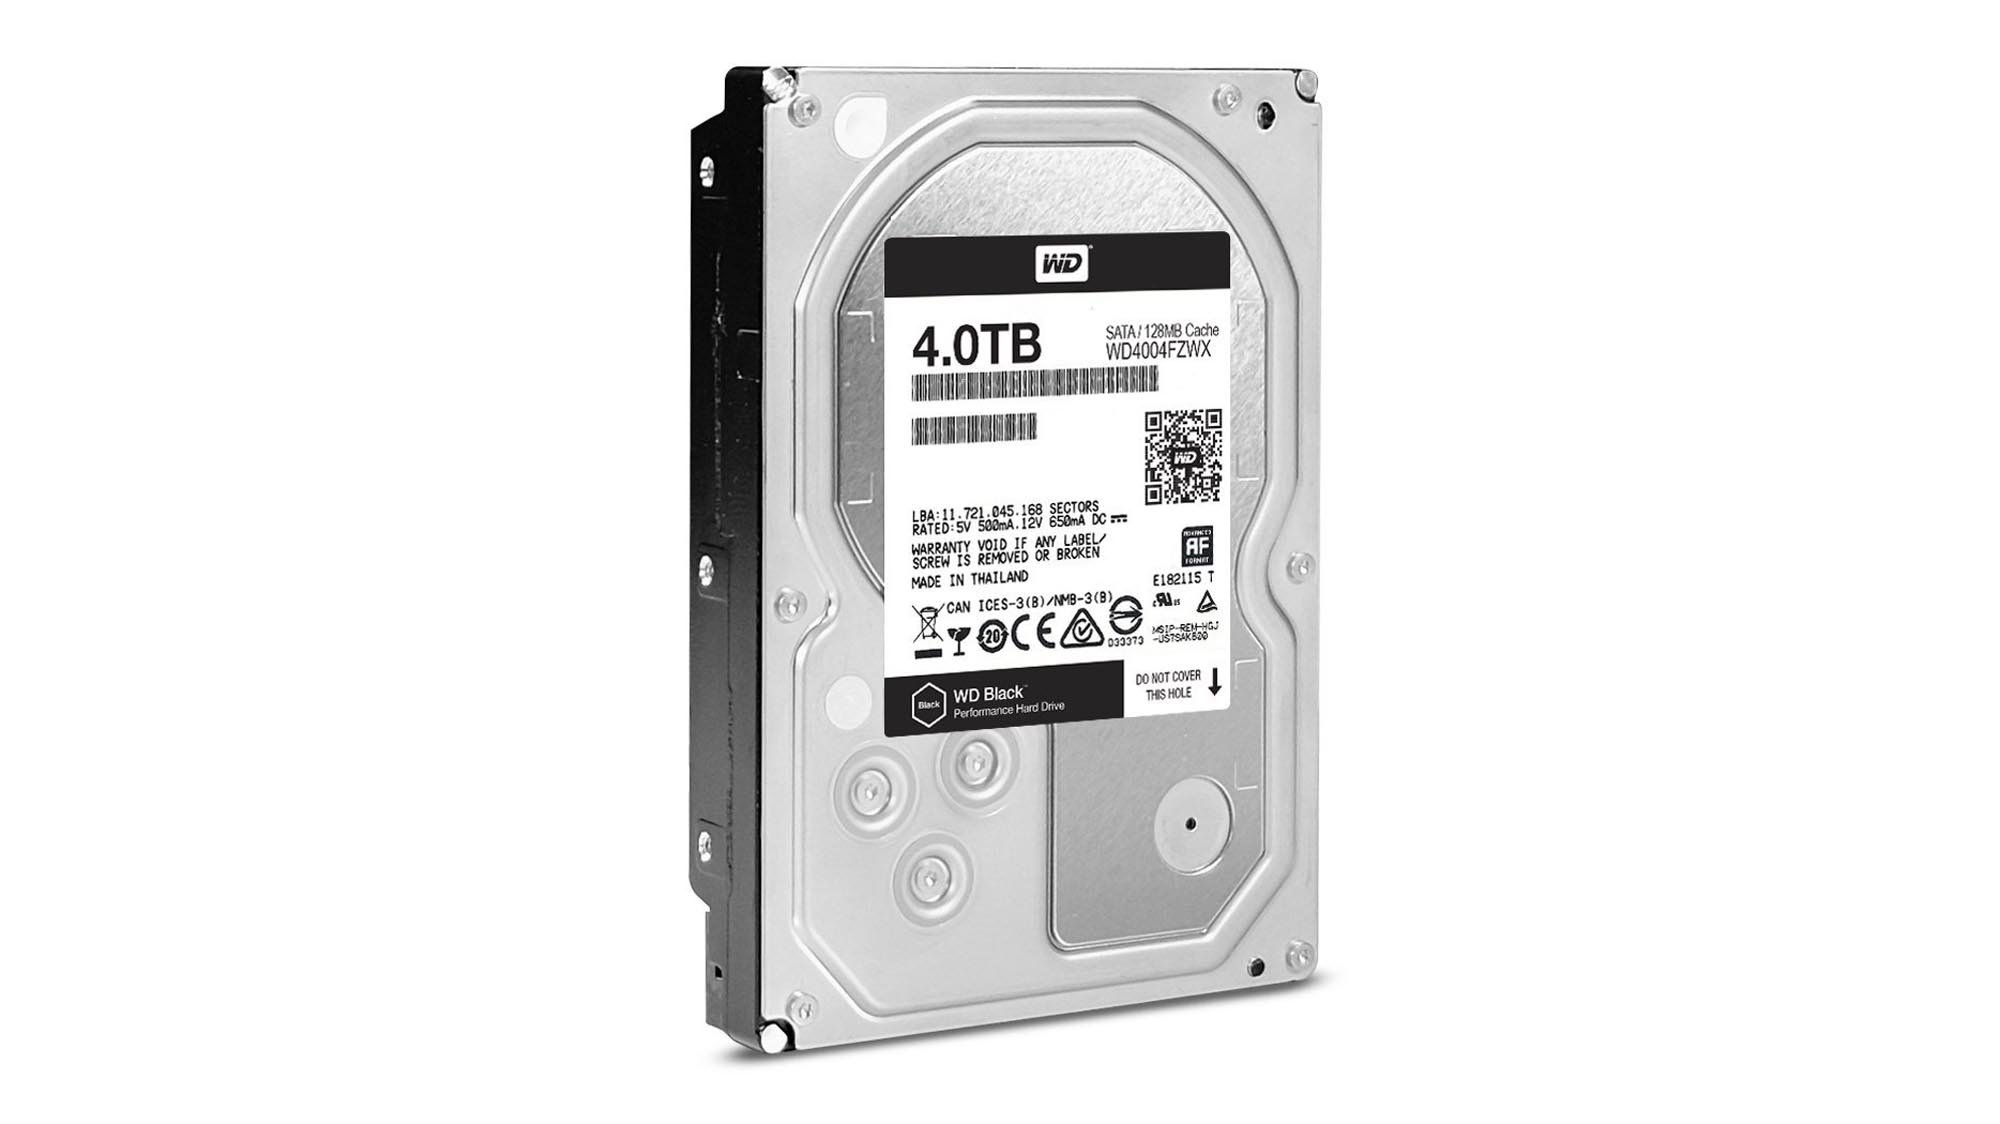 Best internal hard drives 2018: The best high-capacity HDDs